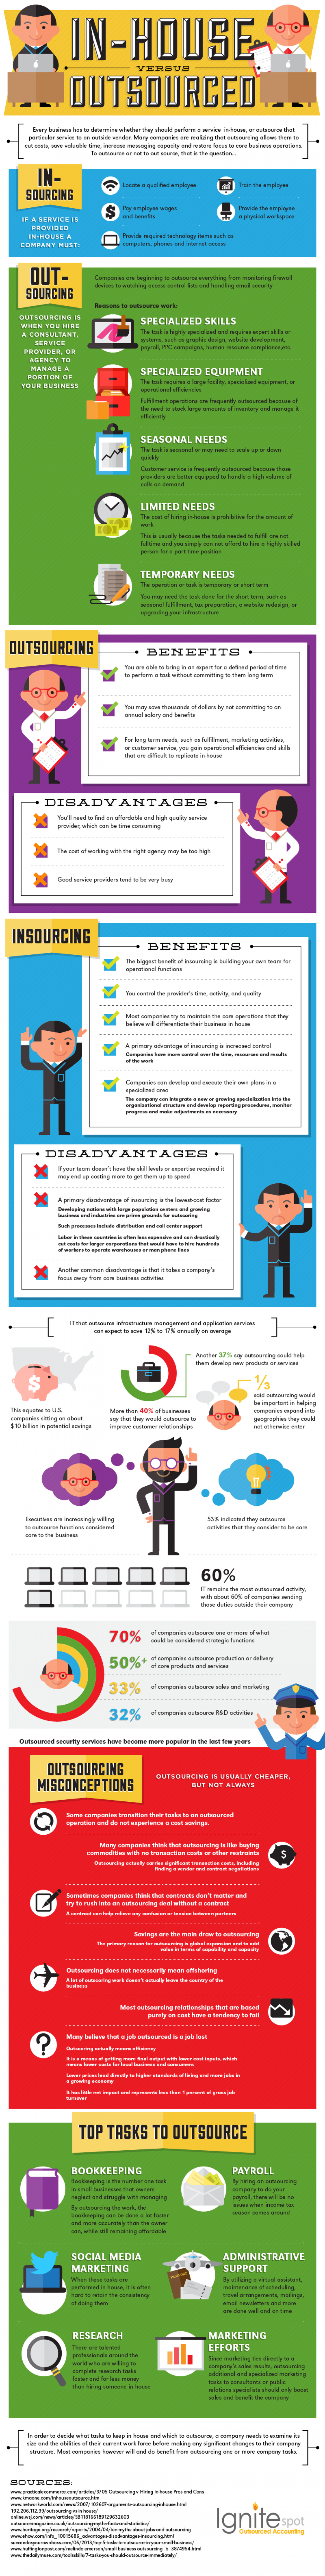 In-House vs. Outsourced Services Infographic